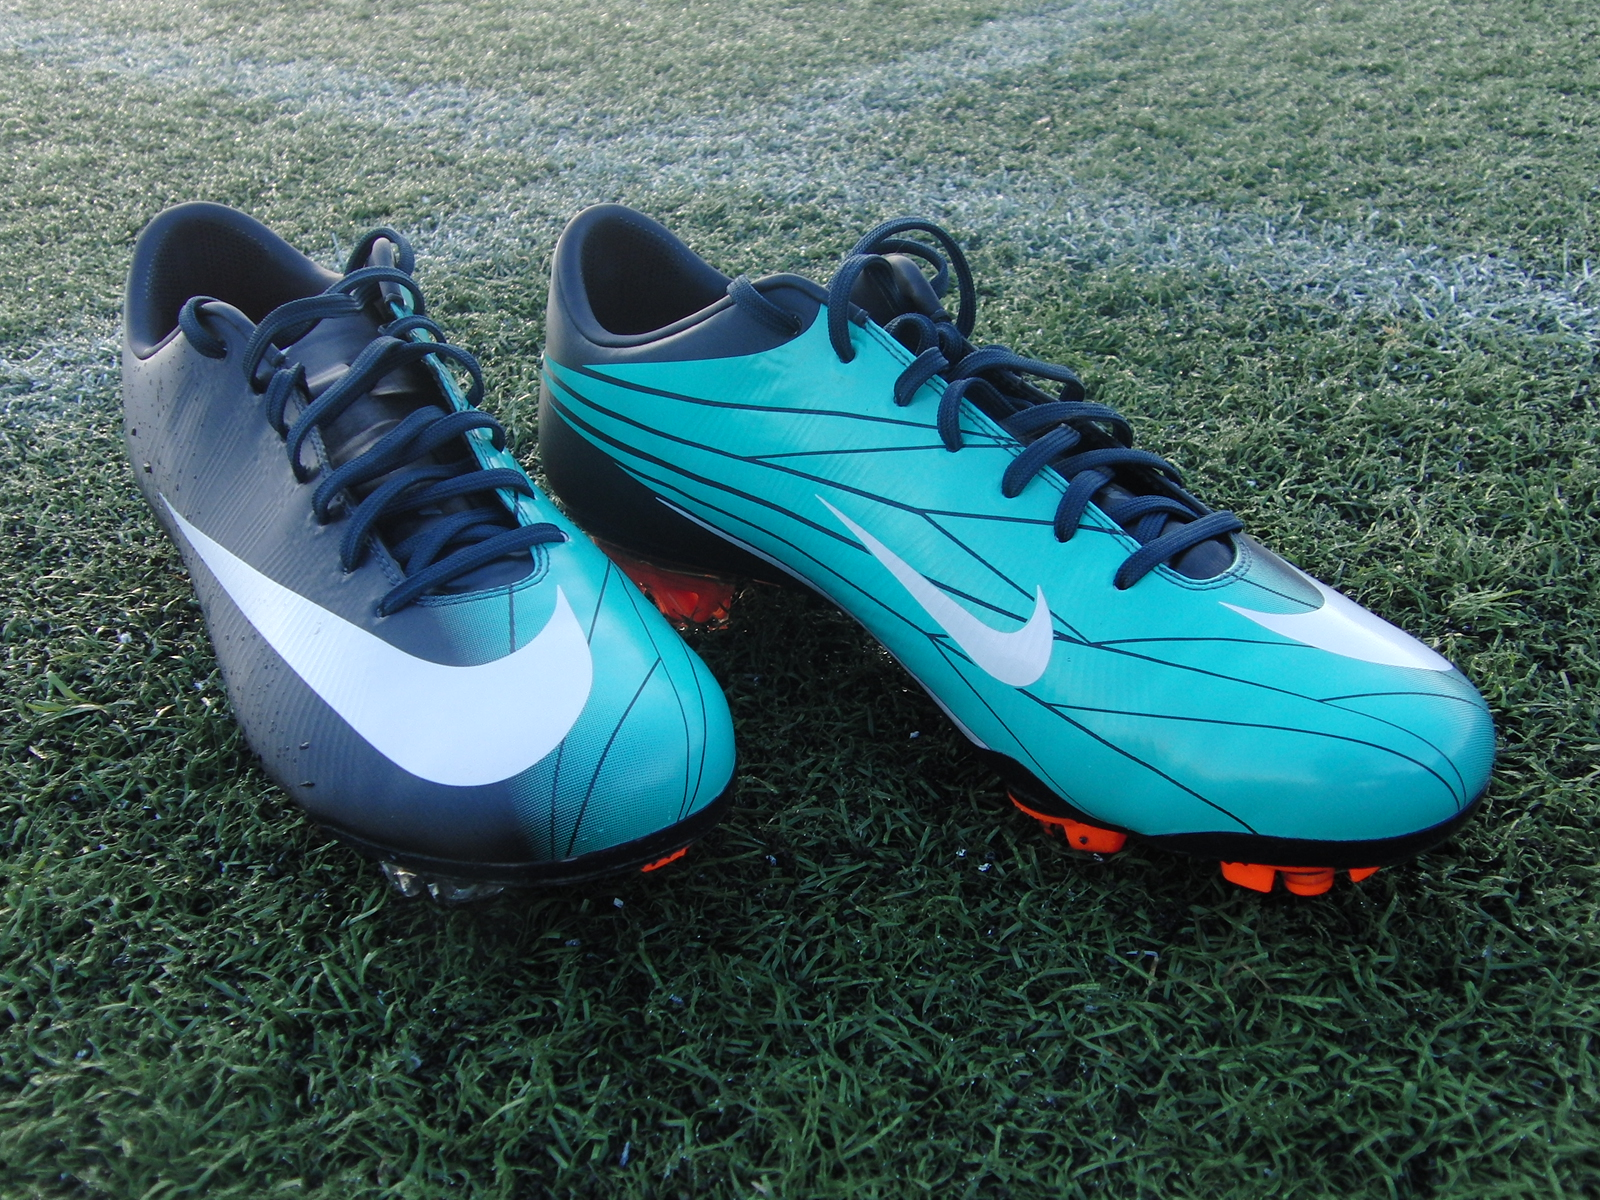 Nike Mercurial Superfly II Review | Soccer Cleats 101